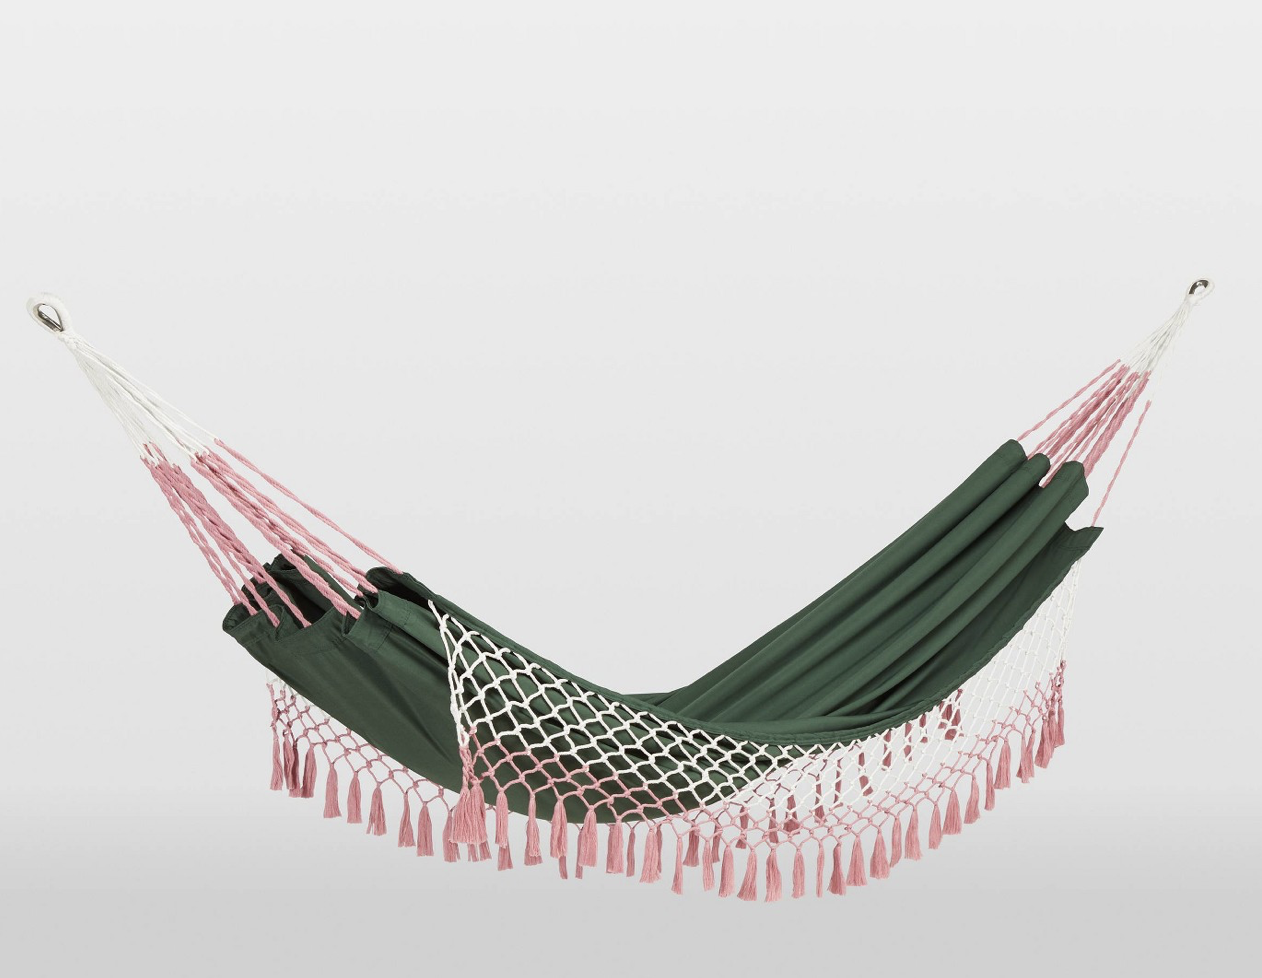 2. An Excuse to Lie Down - Not only is this the prettiest hammock in all the land, but it'll look even better when you're playing that superfun